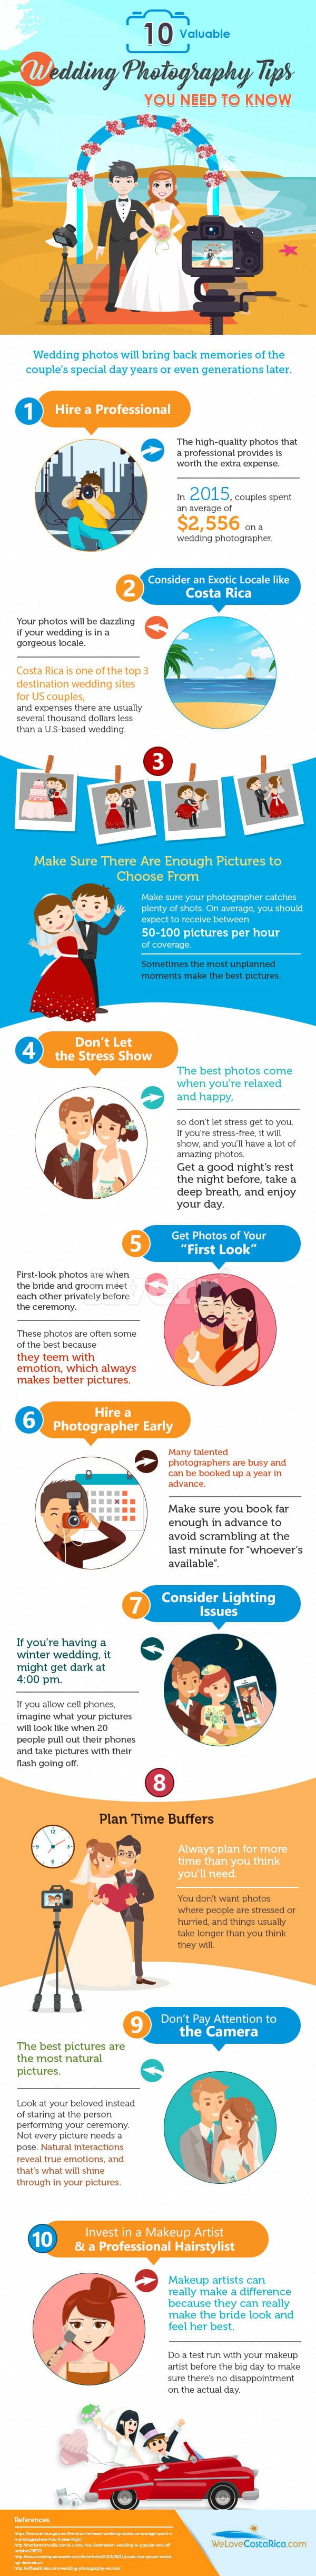 10 Valuable Wedding Photography Tips You Need to Know